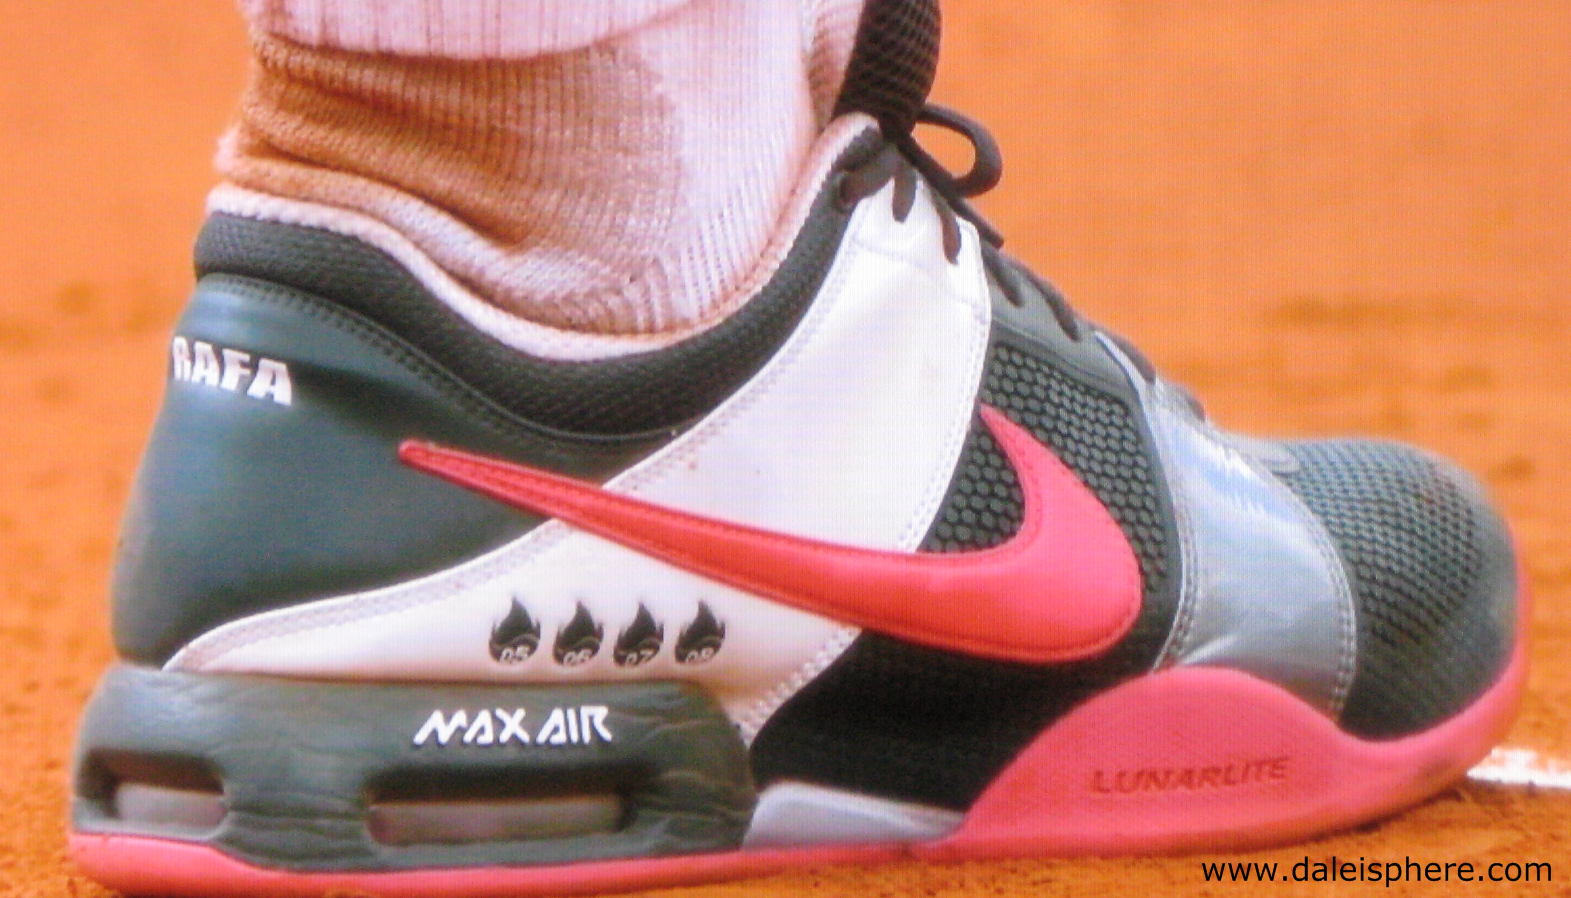 french open 2009 - nadal tennis shoes - single shoe side view